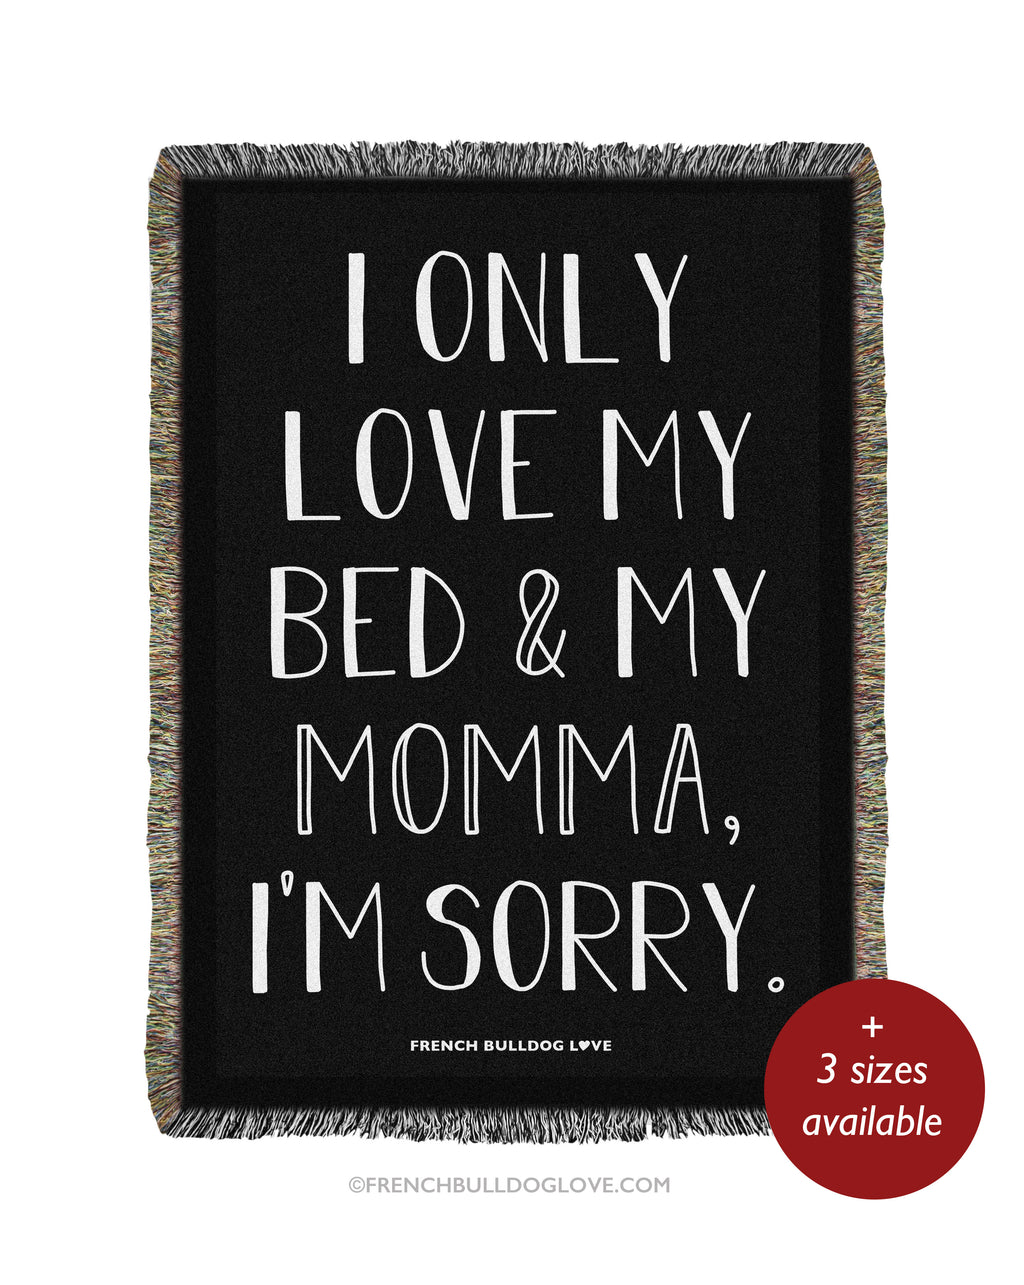 I ONLY LOVE MY BED & MY MOMMA - Woven Blanket - Black - 100% Cotton